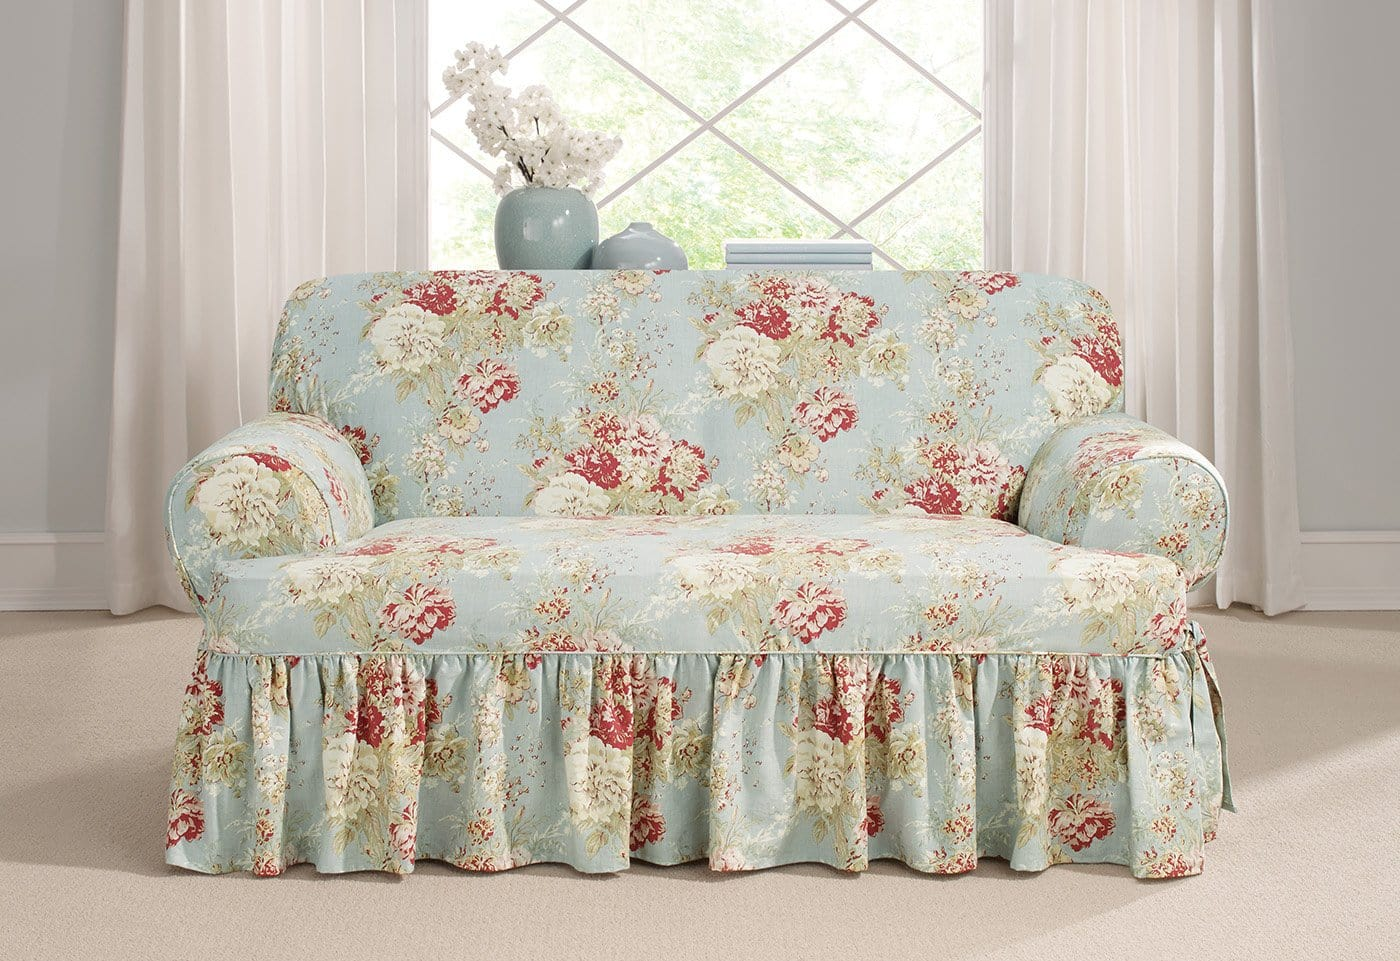 Ballad Bouquet By Waverly One Piece Loveseat Slipcover Ruffled Skirt 100% Cotton Machine Washable - Loveseat / T-Cushion / Robins Egg